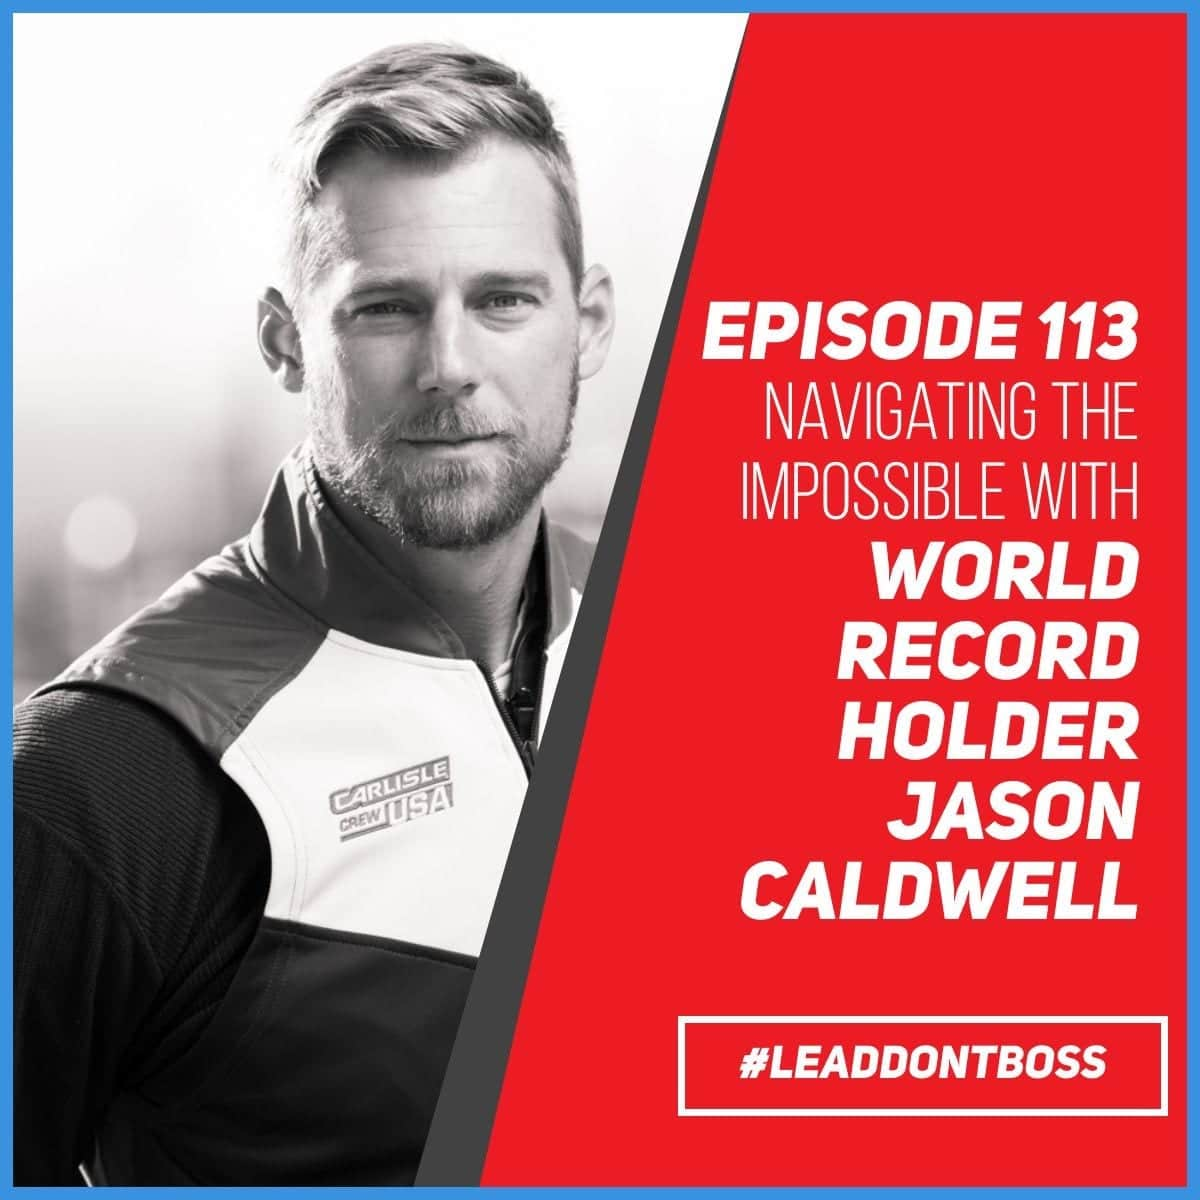 Navigating the Impossible | Jason Caldwell | Episode 113